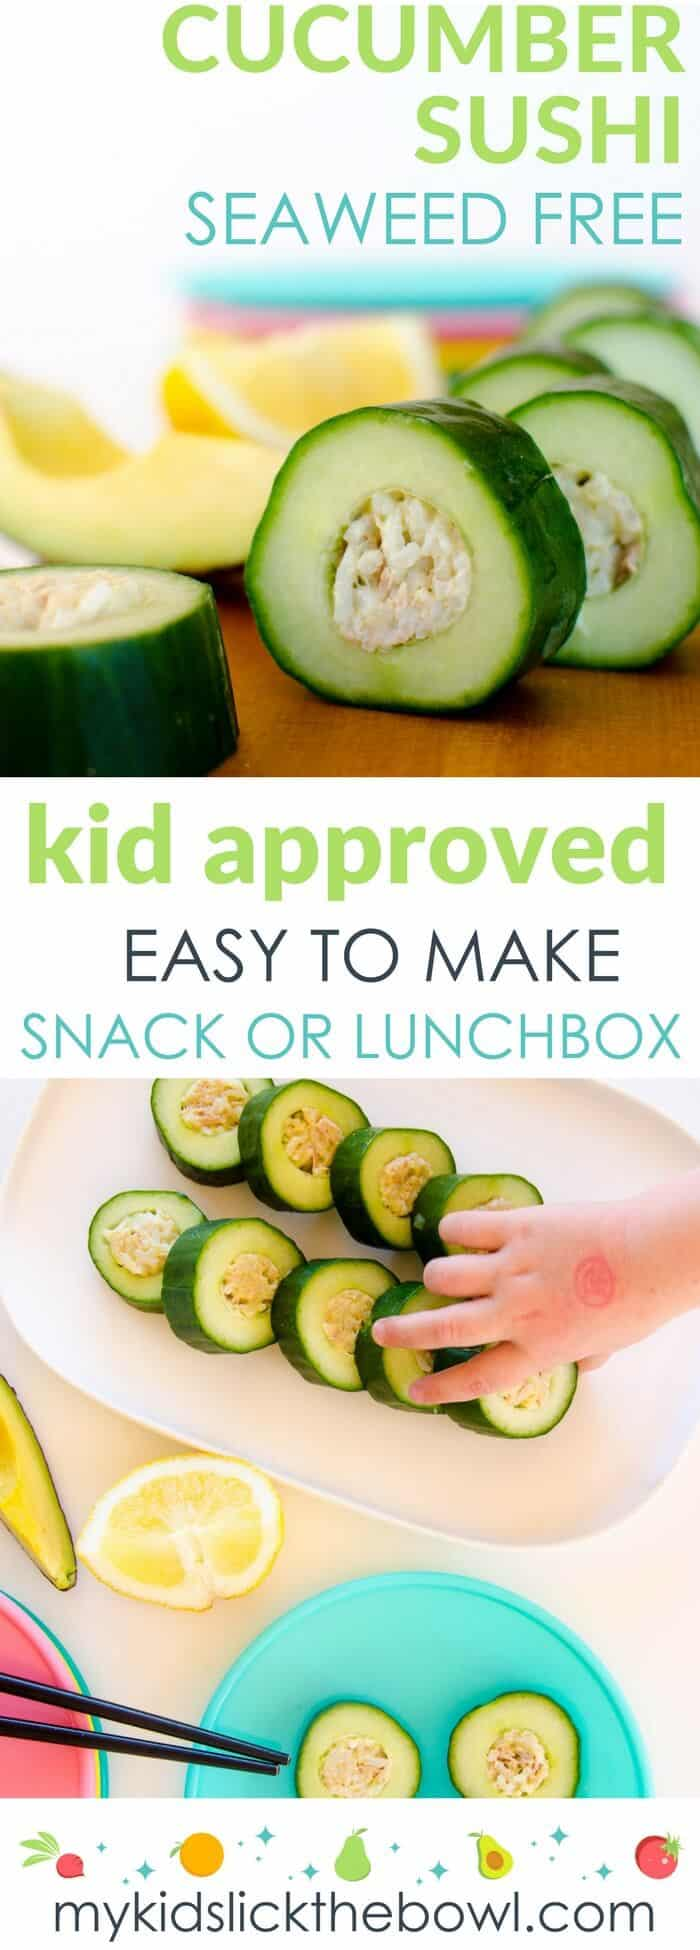 Cucumber sushi for kids, easy, healthy recipe with no seaweed. A fun snack or lunchbox item